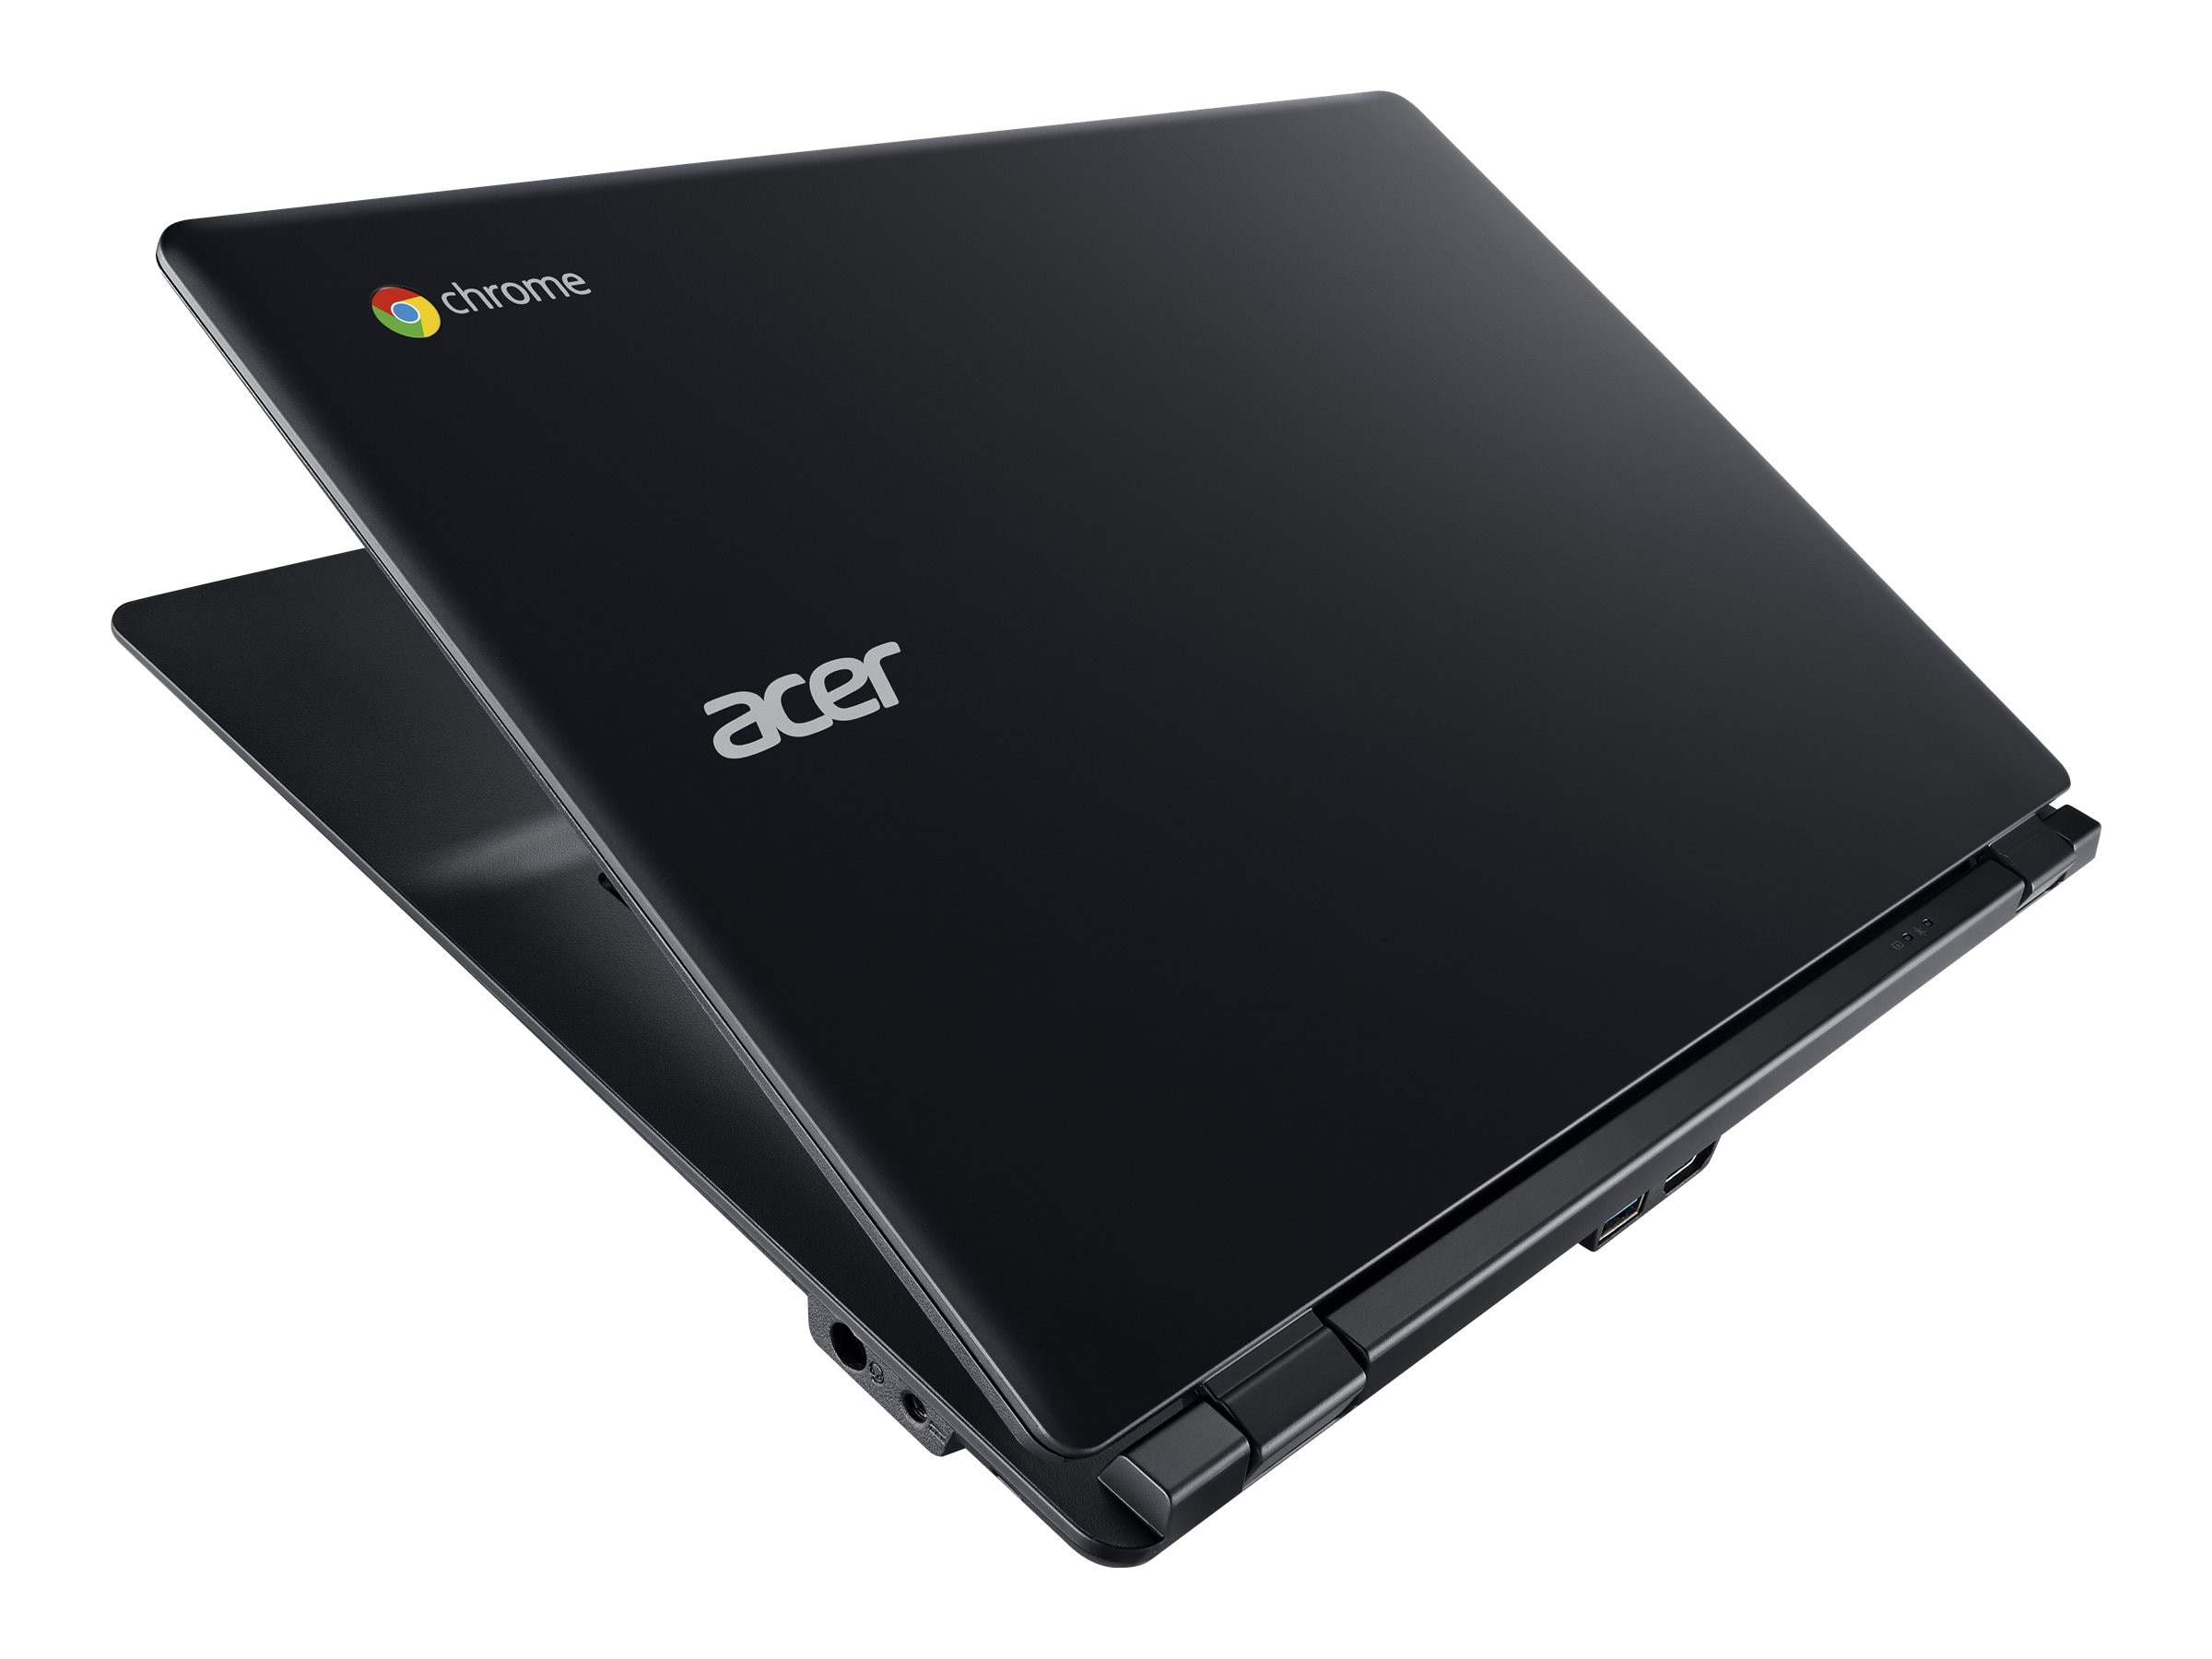 Acer NX.G14AA.003 Image 8